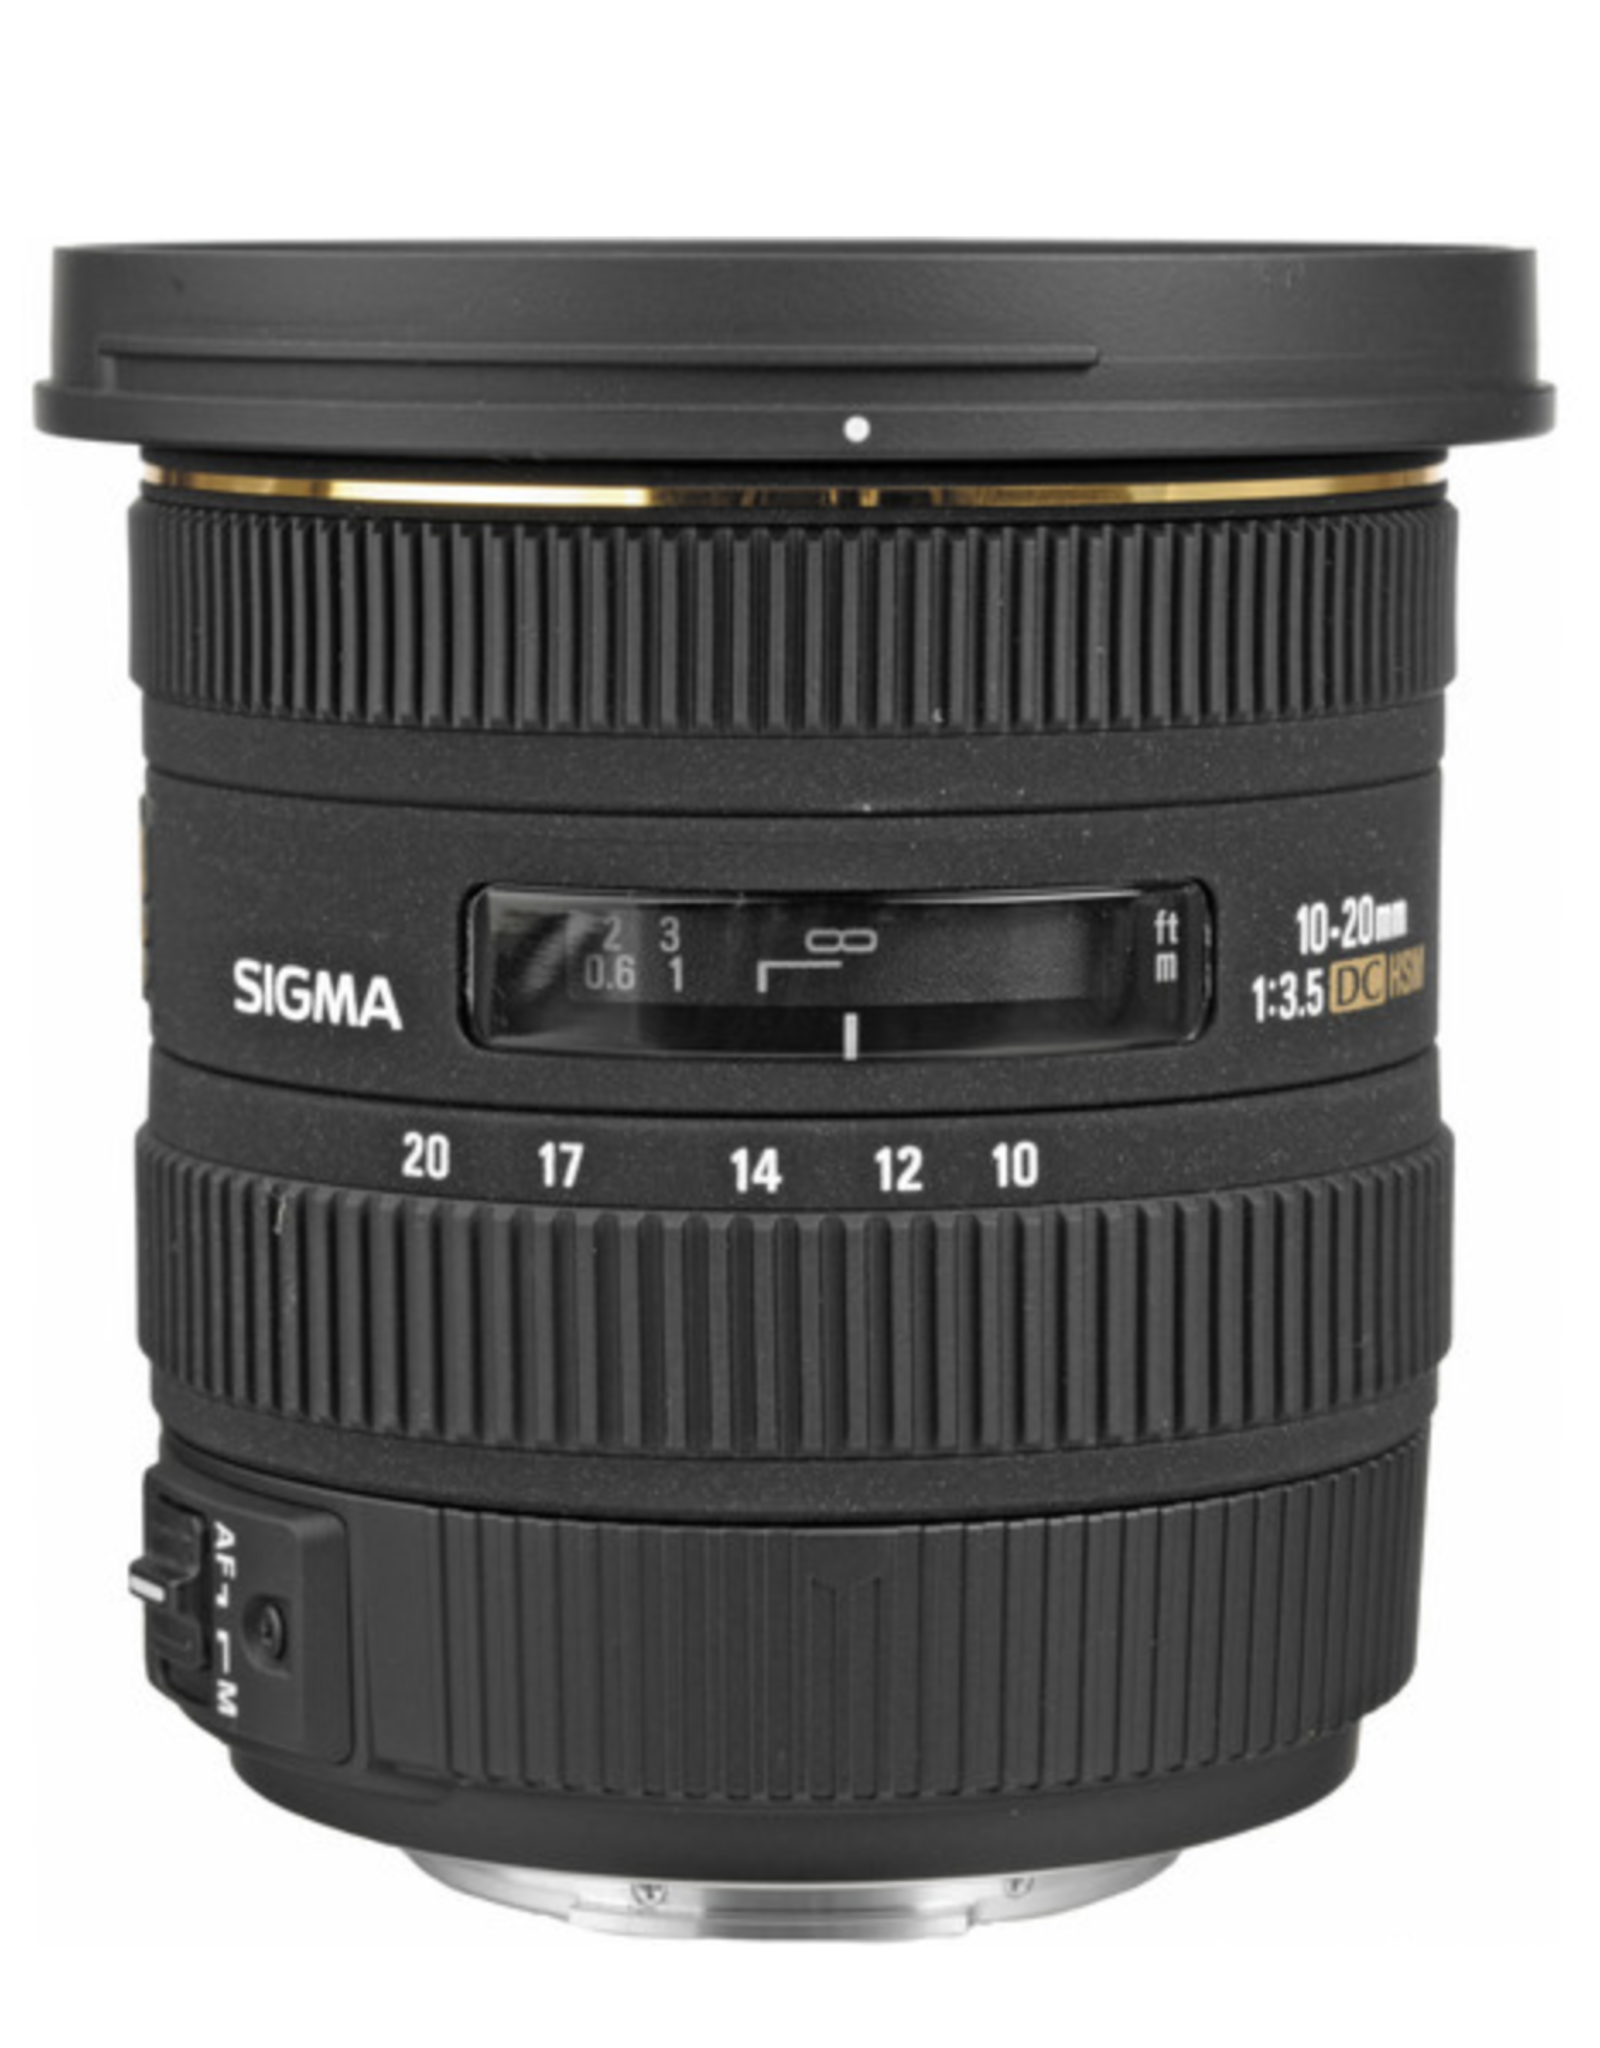 Sigma Sigma 10-20mm f/3.5 EX DC HSM Lens for Canon EF